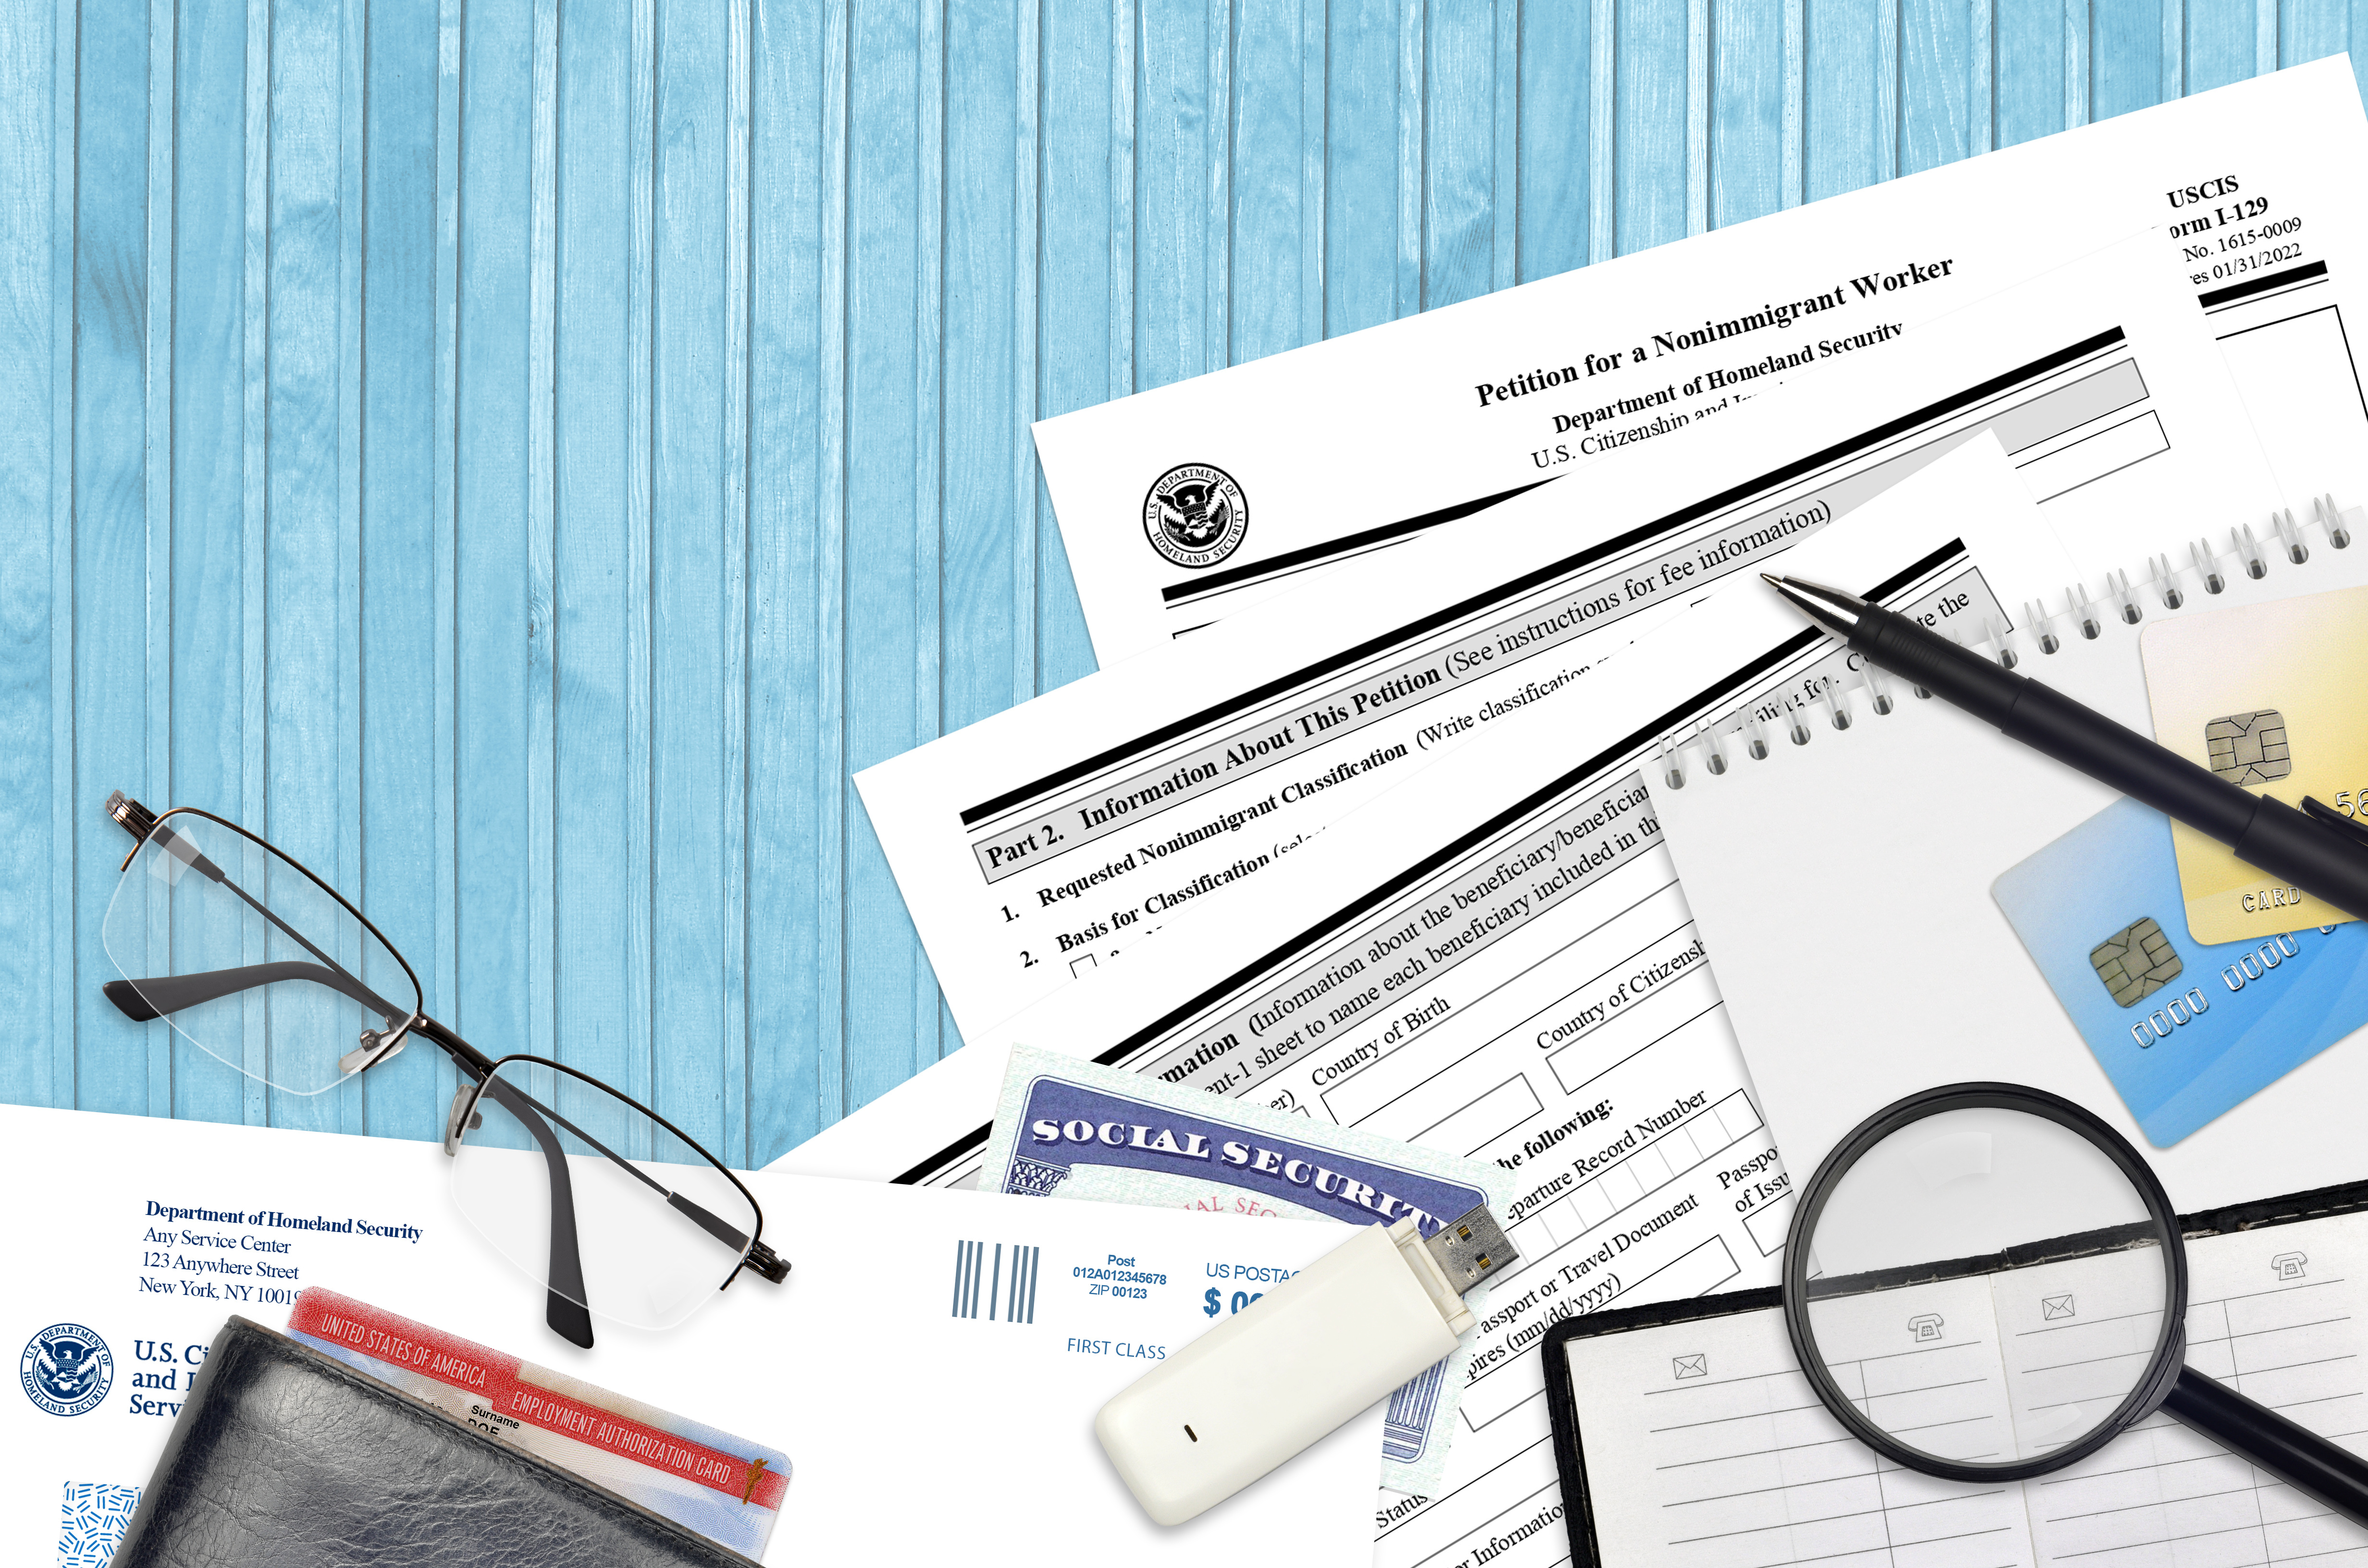 Now Is the Time to Prepare for H-1B Cap Filings for New Hires in 2021